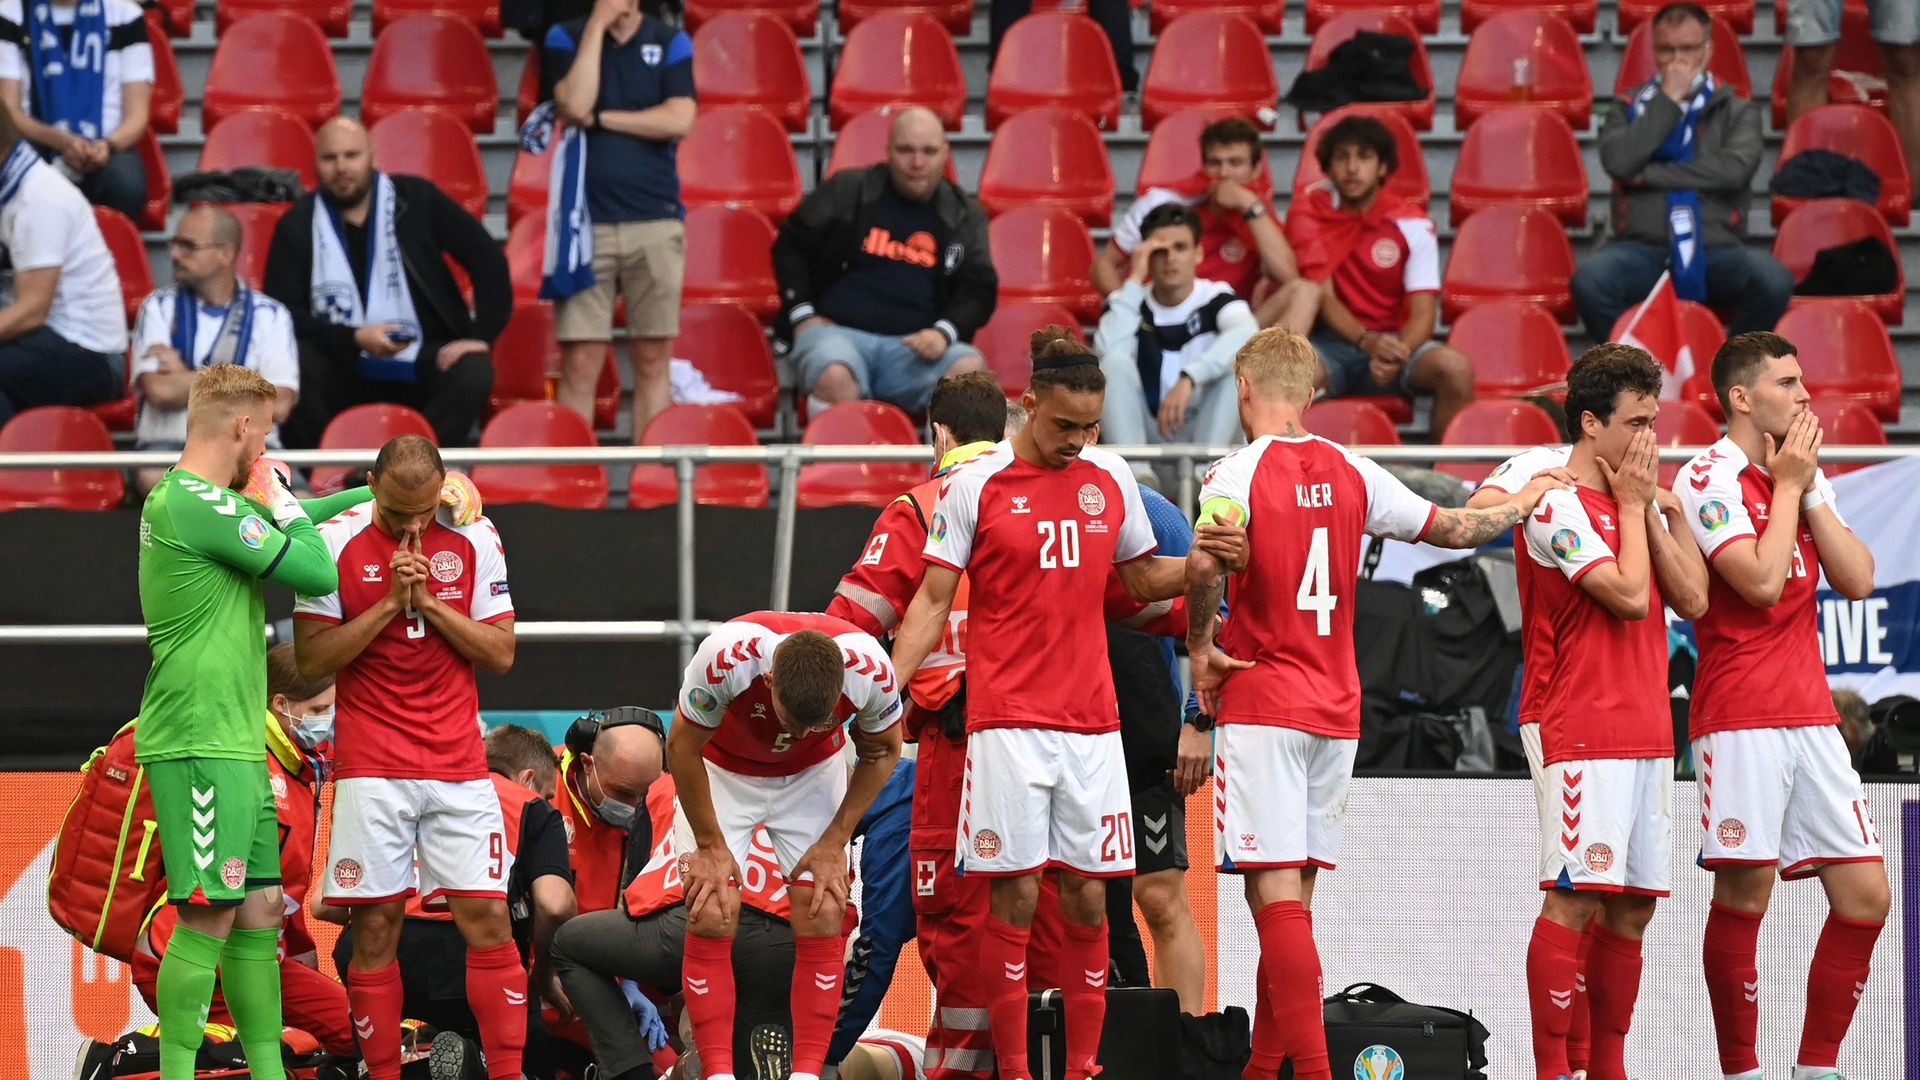 Shocked Denmark players gather around teammate Christian Eriksen after his collapse in the Euro 2020 match against Finland - Credit: Photo by JONATHAN NACKSTRAND/AFP via Getty Images